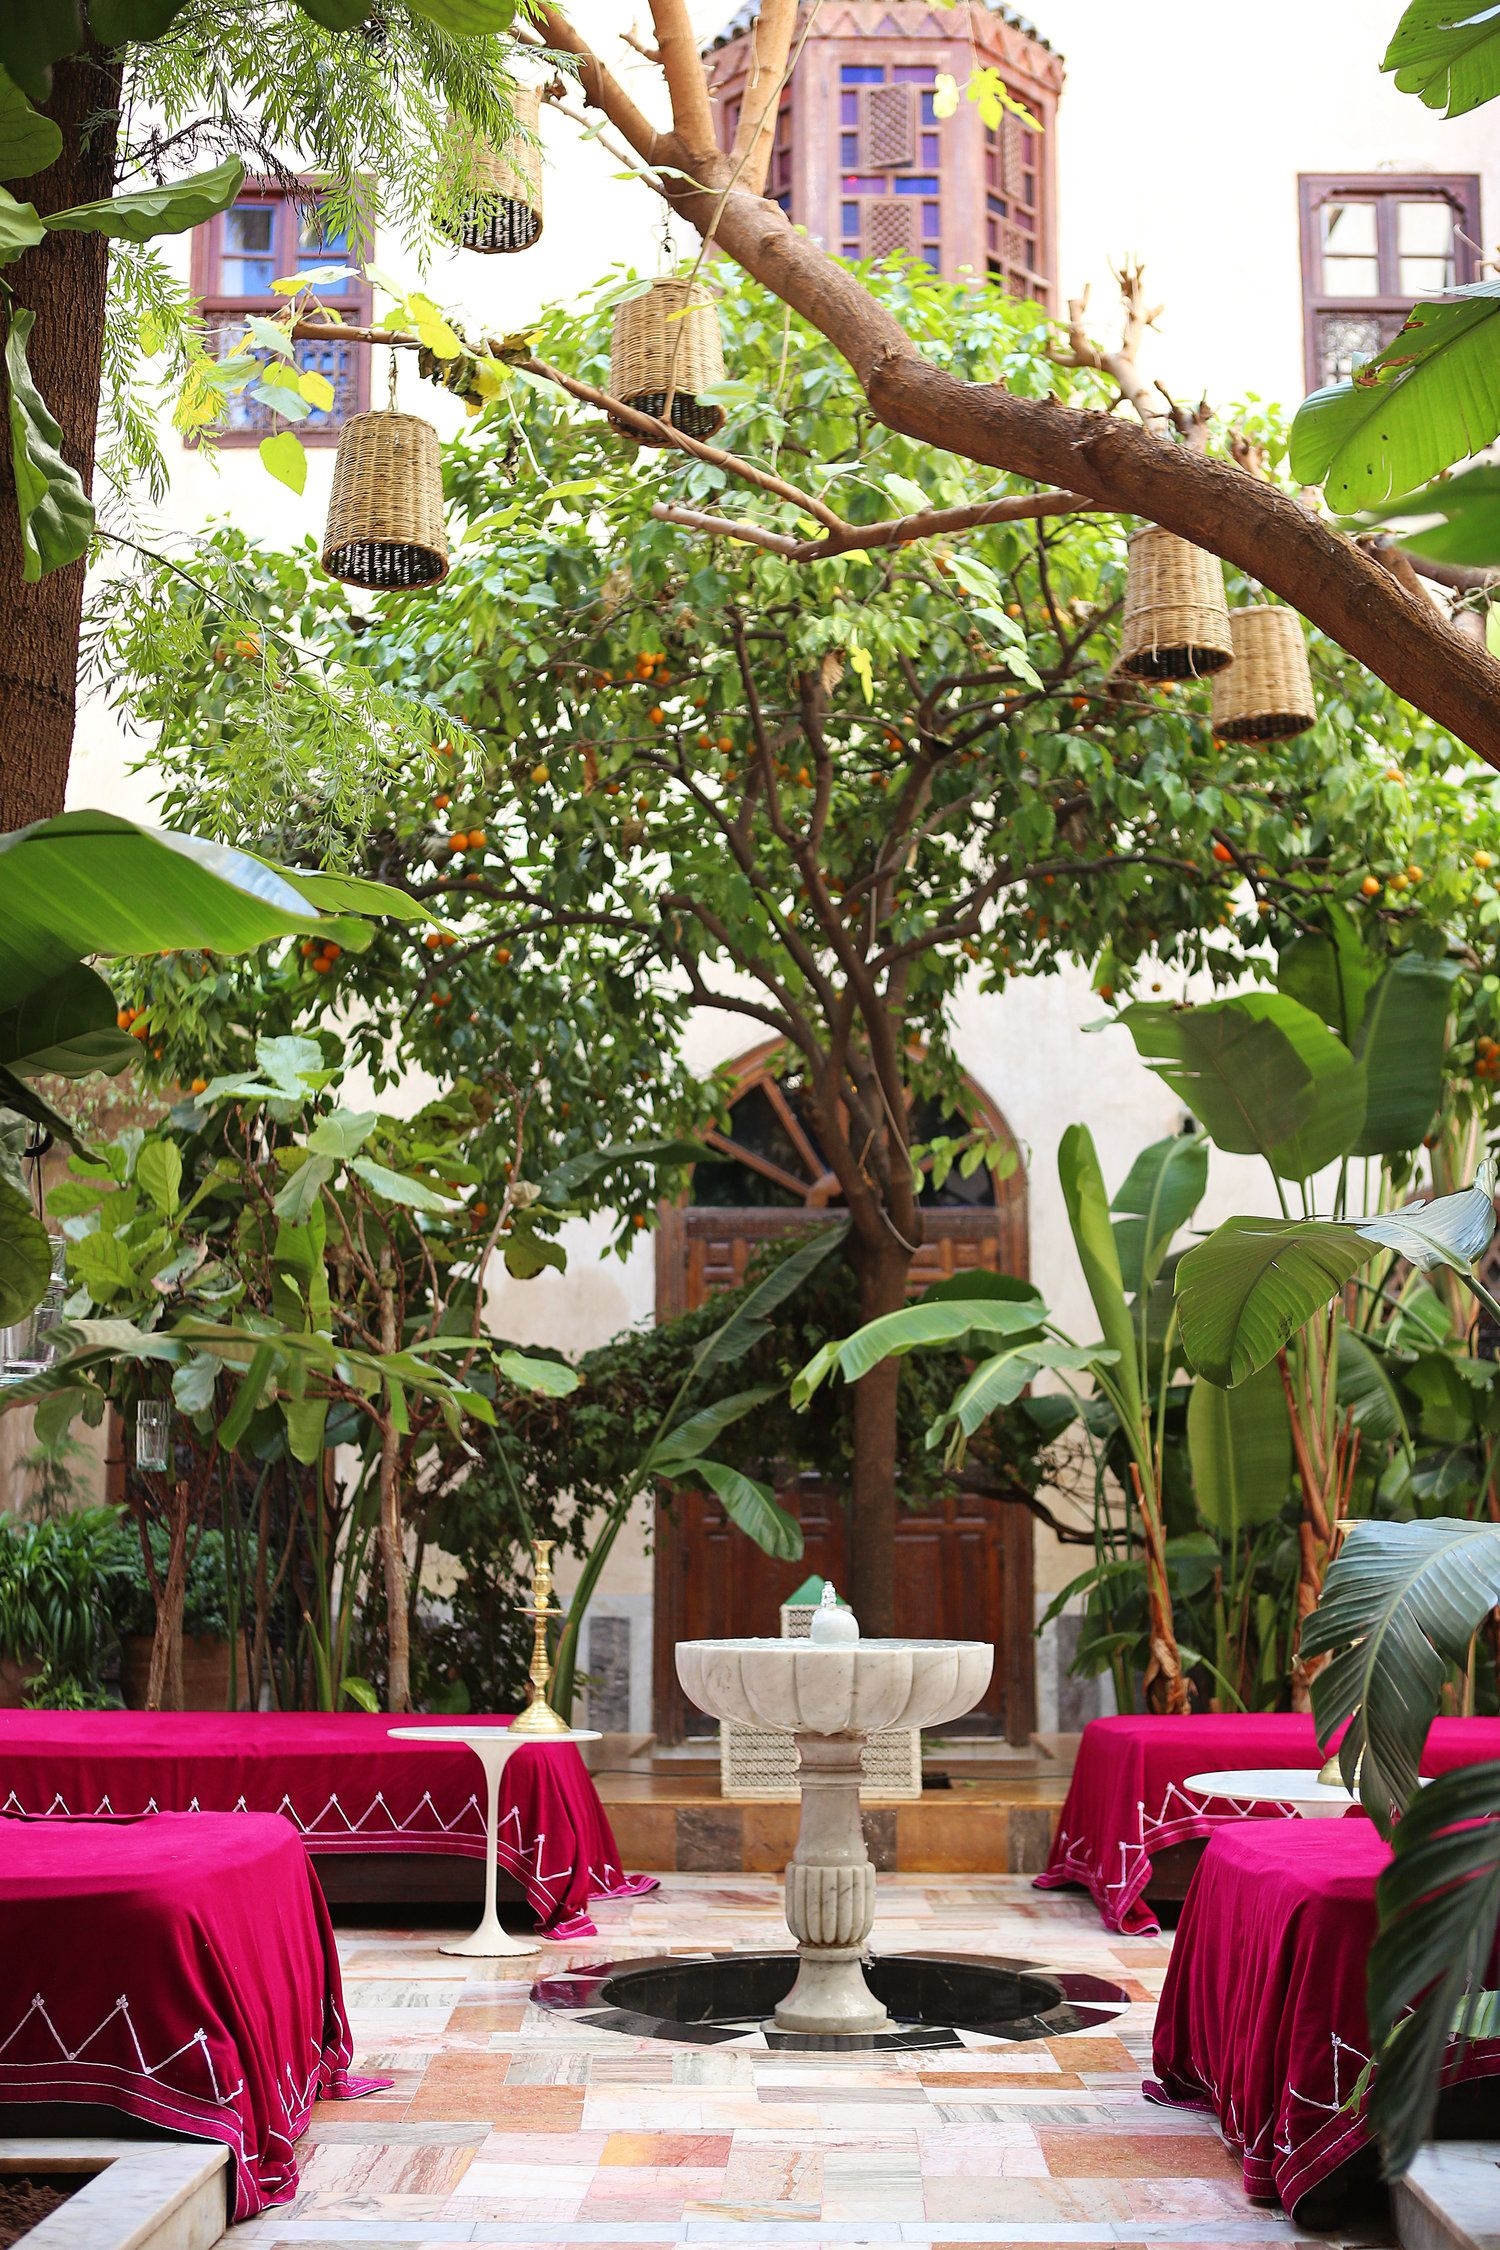 How To Make The Most Of Your Trip To Marrakech Morocco Marrakesh